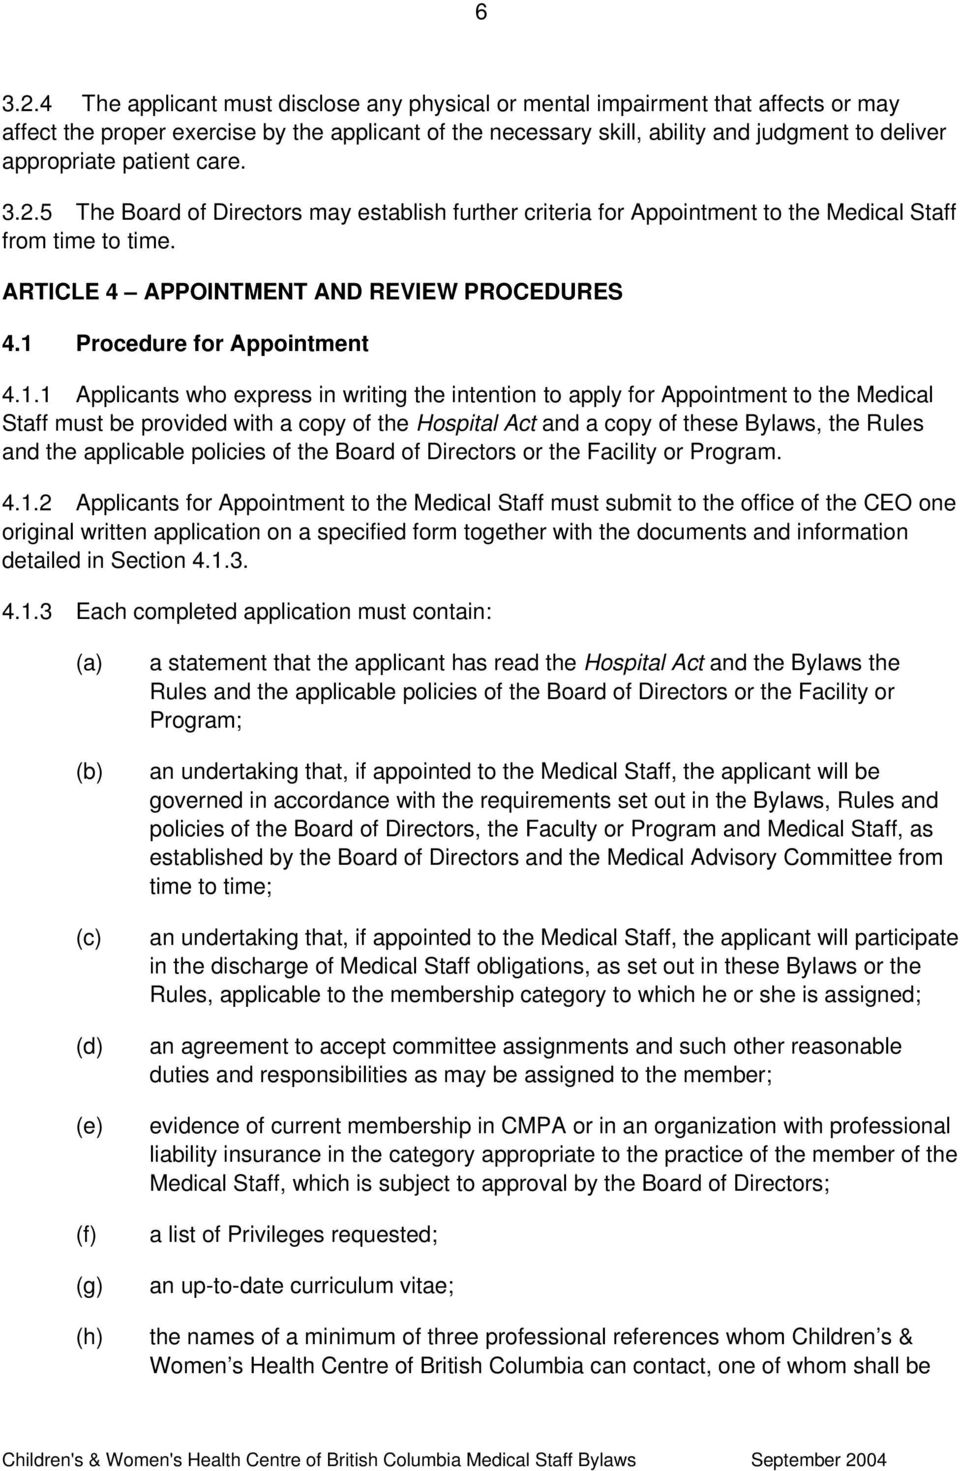 patient care. 3.2.5 The Board of Directors may establish further criteria for Appointment to the Medical Staff from time to time. ARTICLE 4 APPOINTMENT AND REVIEW PROCEDURES 4.